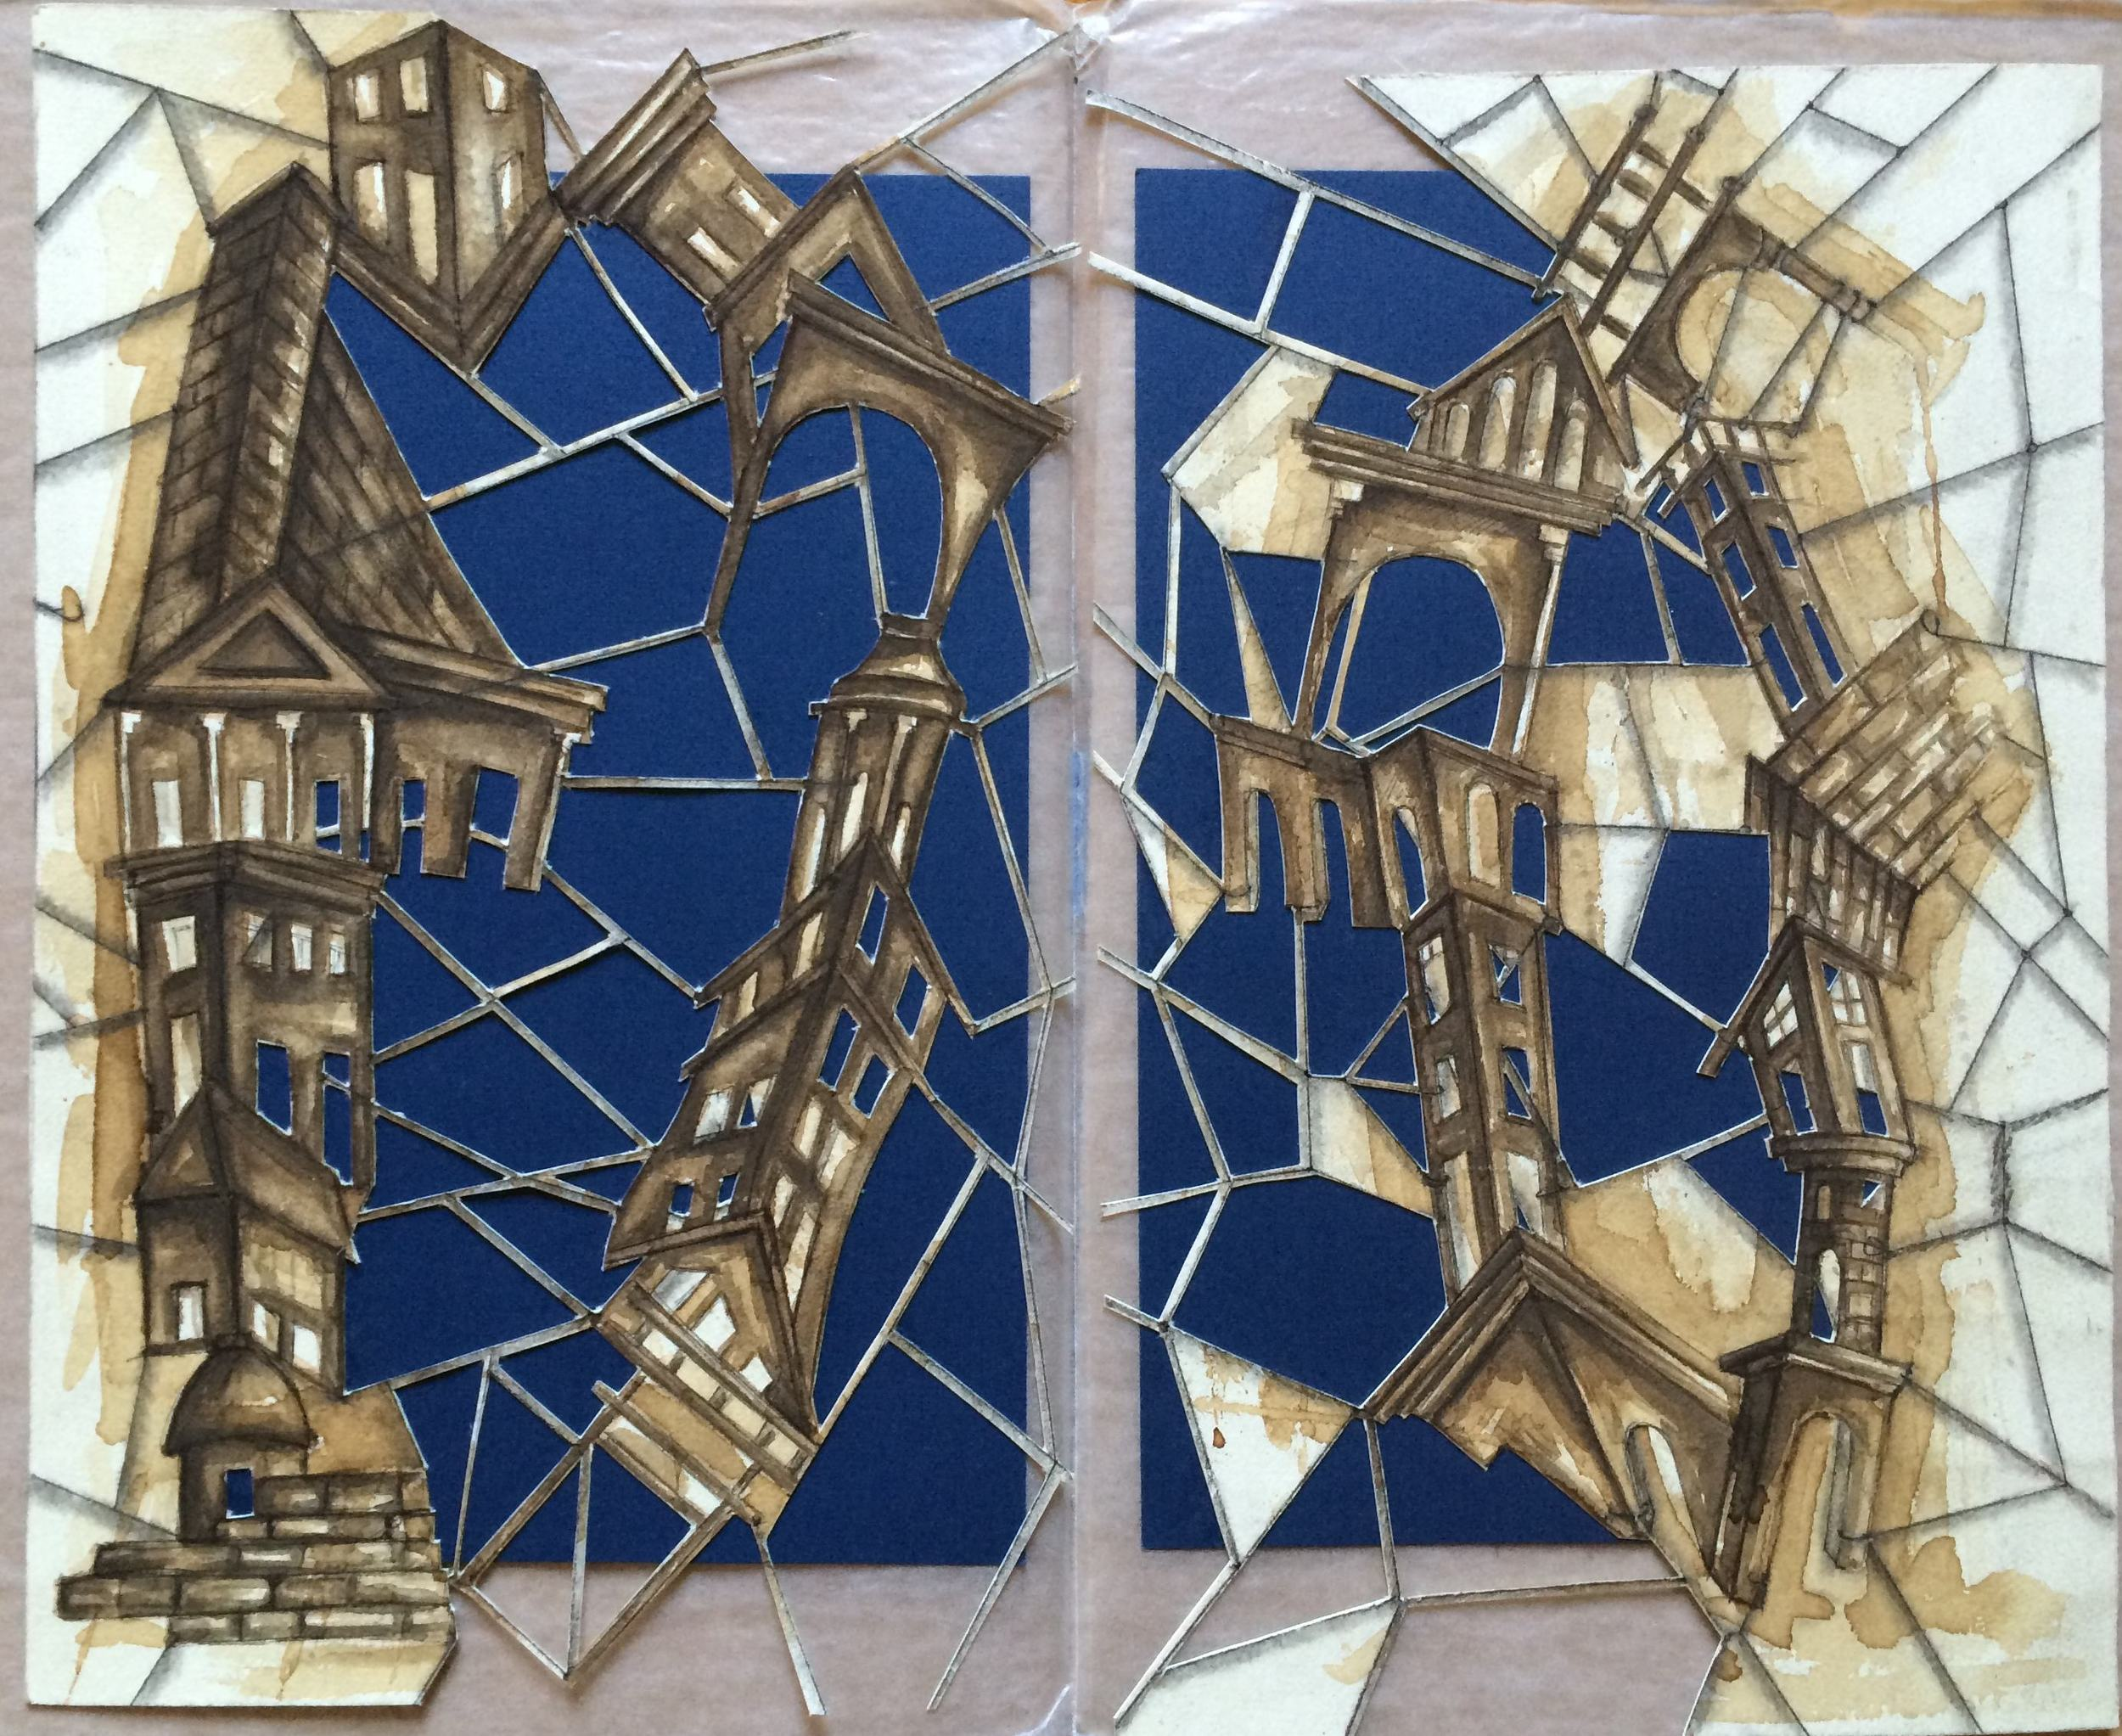 3rd version: Rodríguez cuts through areas, adds blue background